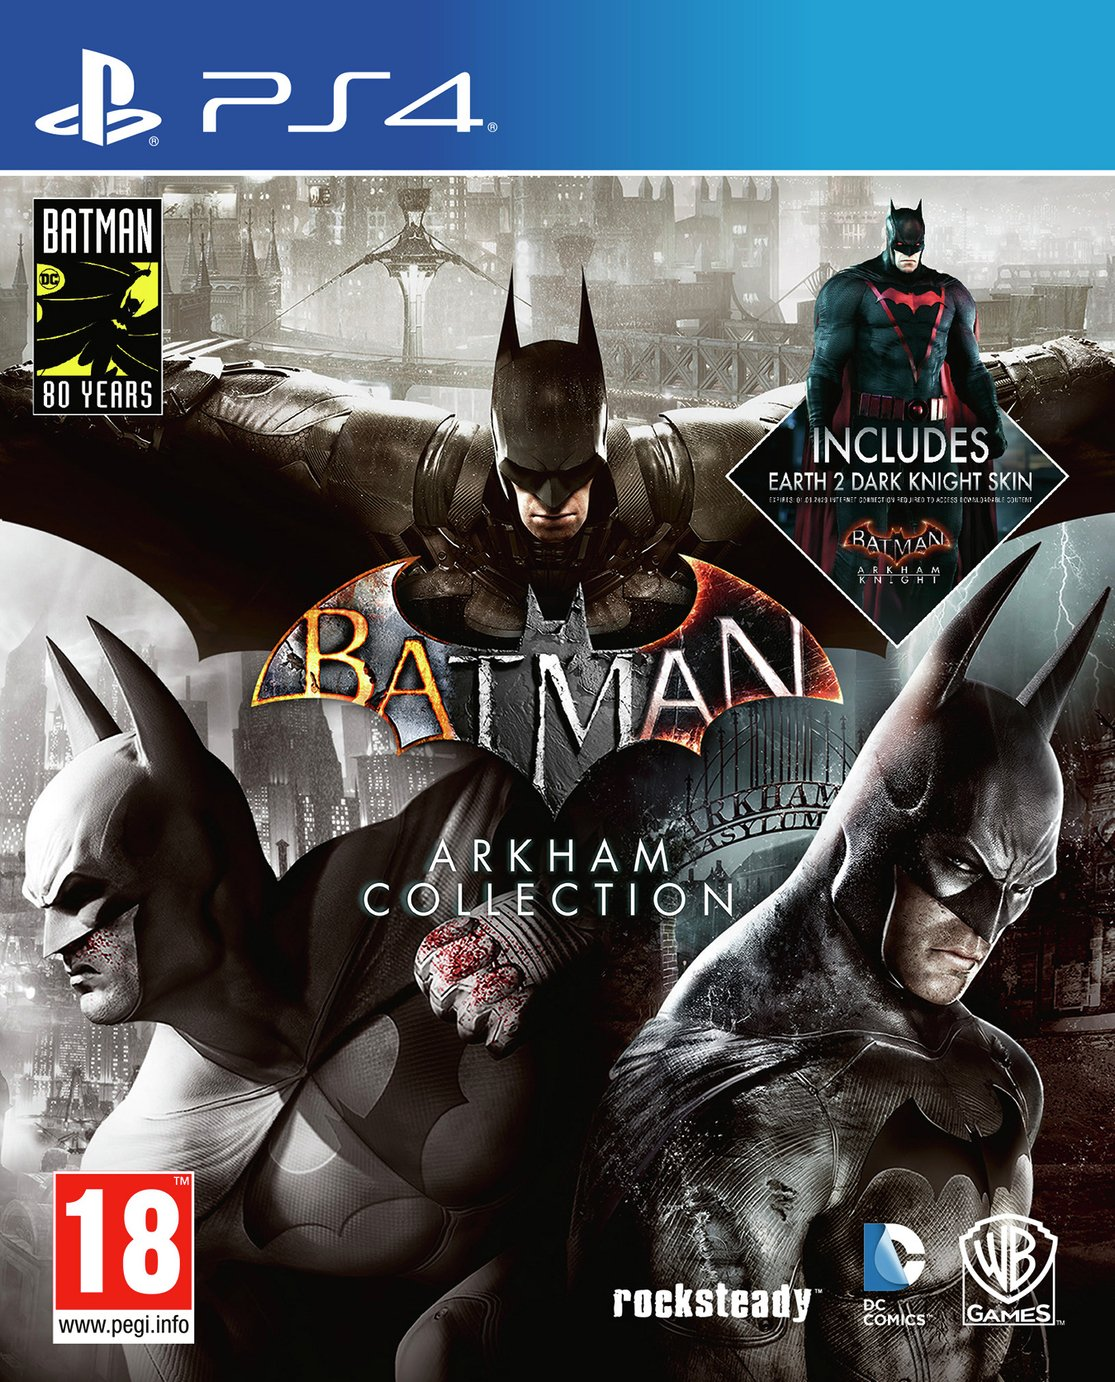 Batman Arkham Collection Steelbook Edn PS4 Pre-Order